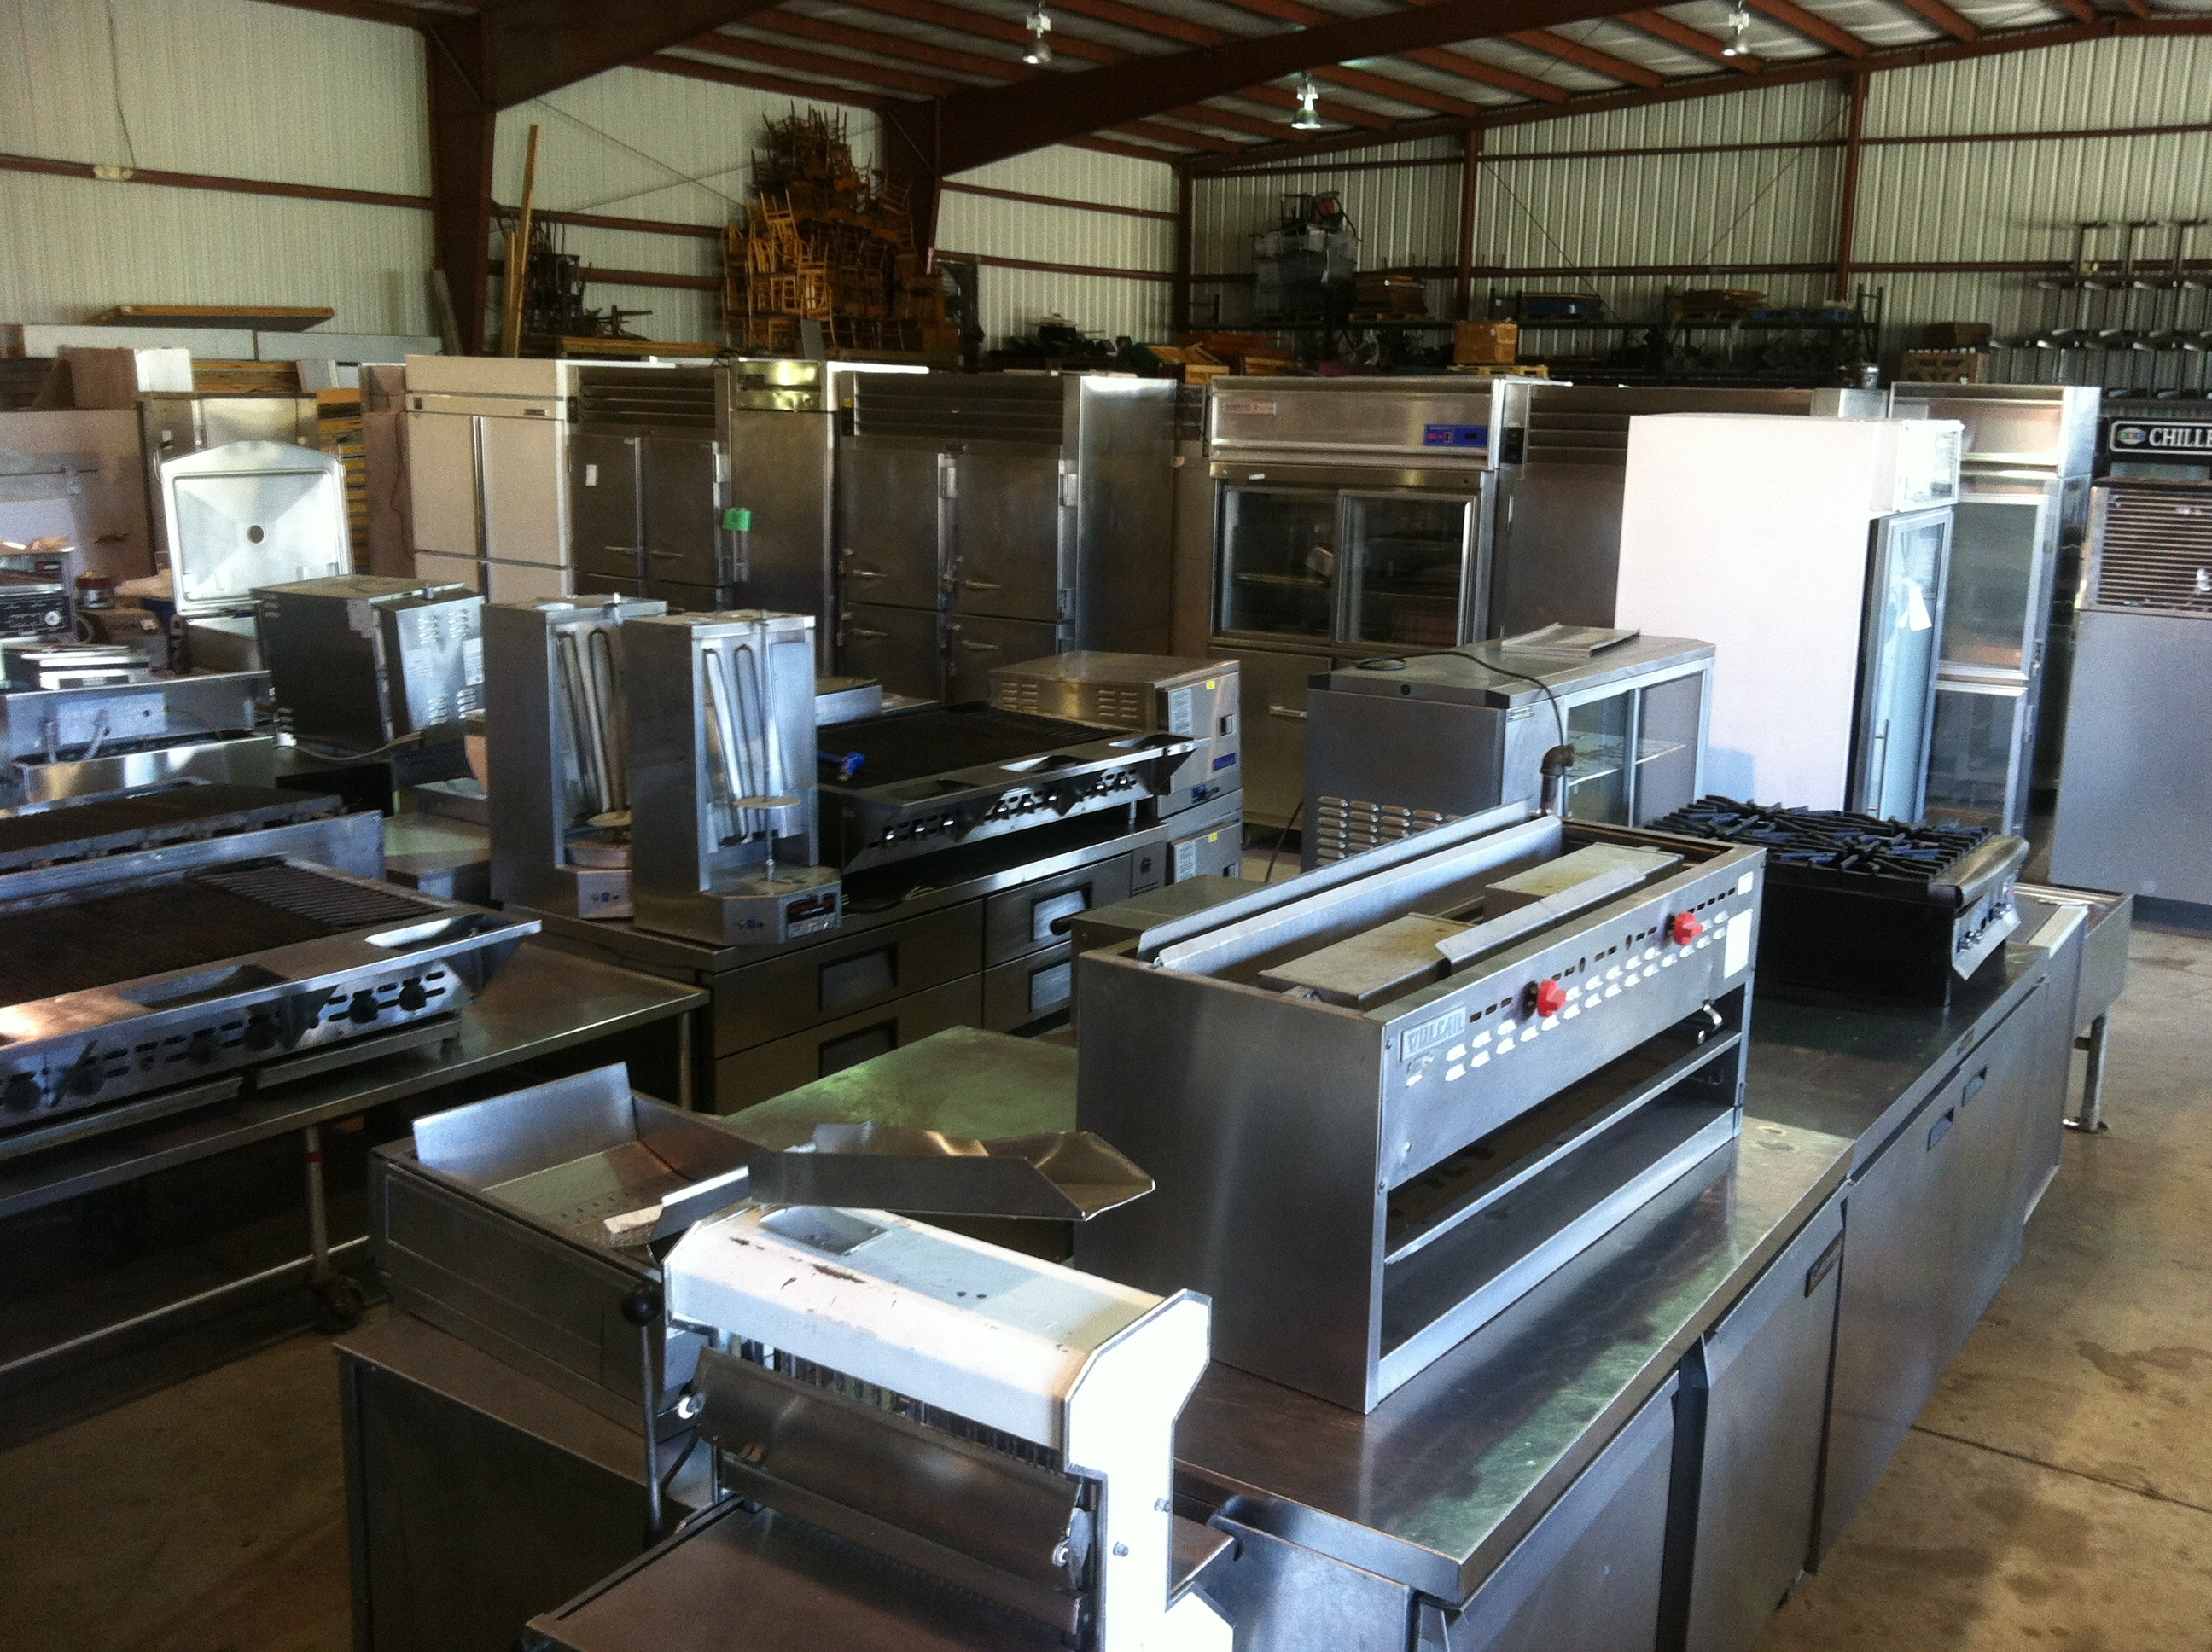 Used Kitchen Equipment ~ Truckloads of restaurant equipment arriving every week